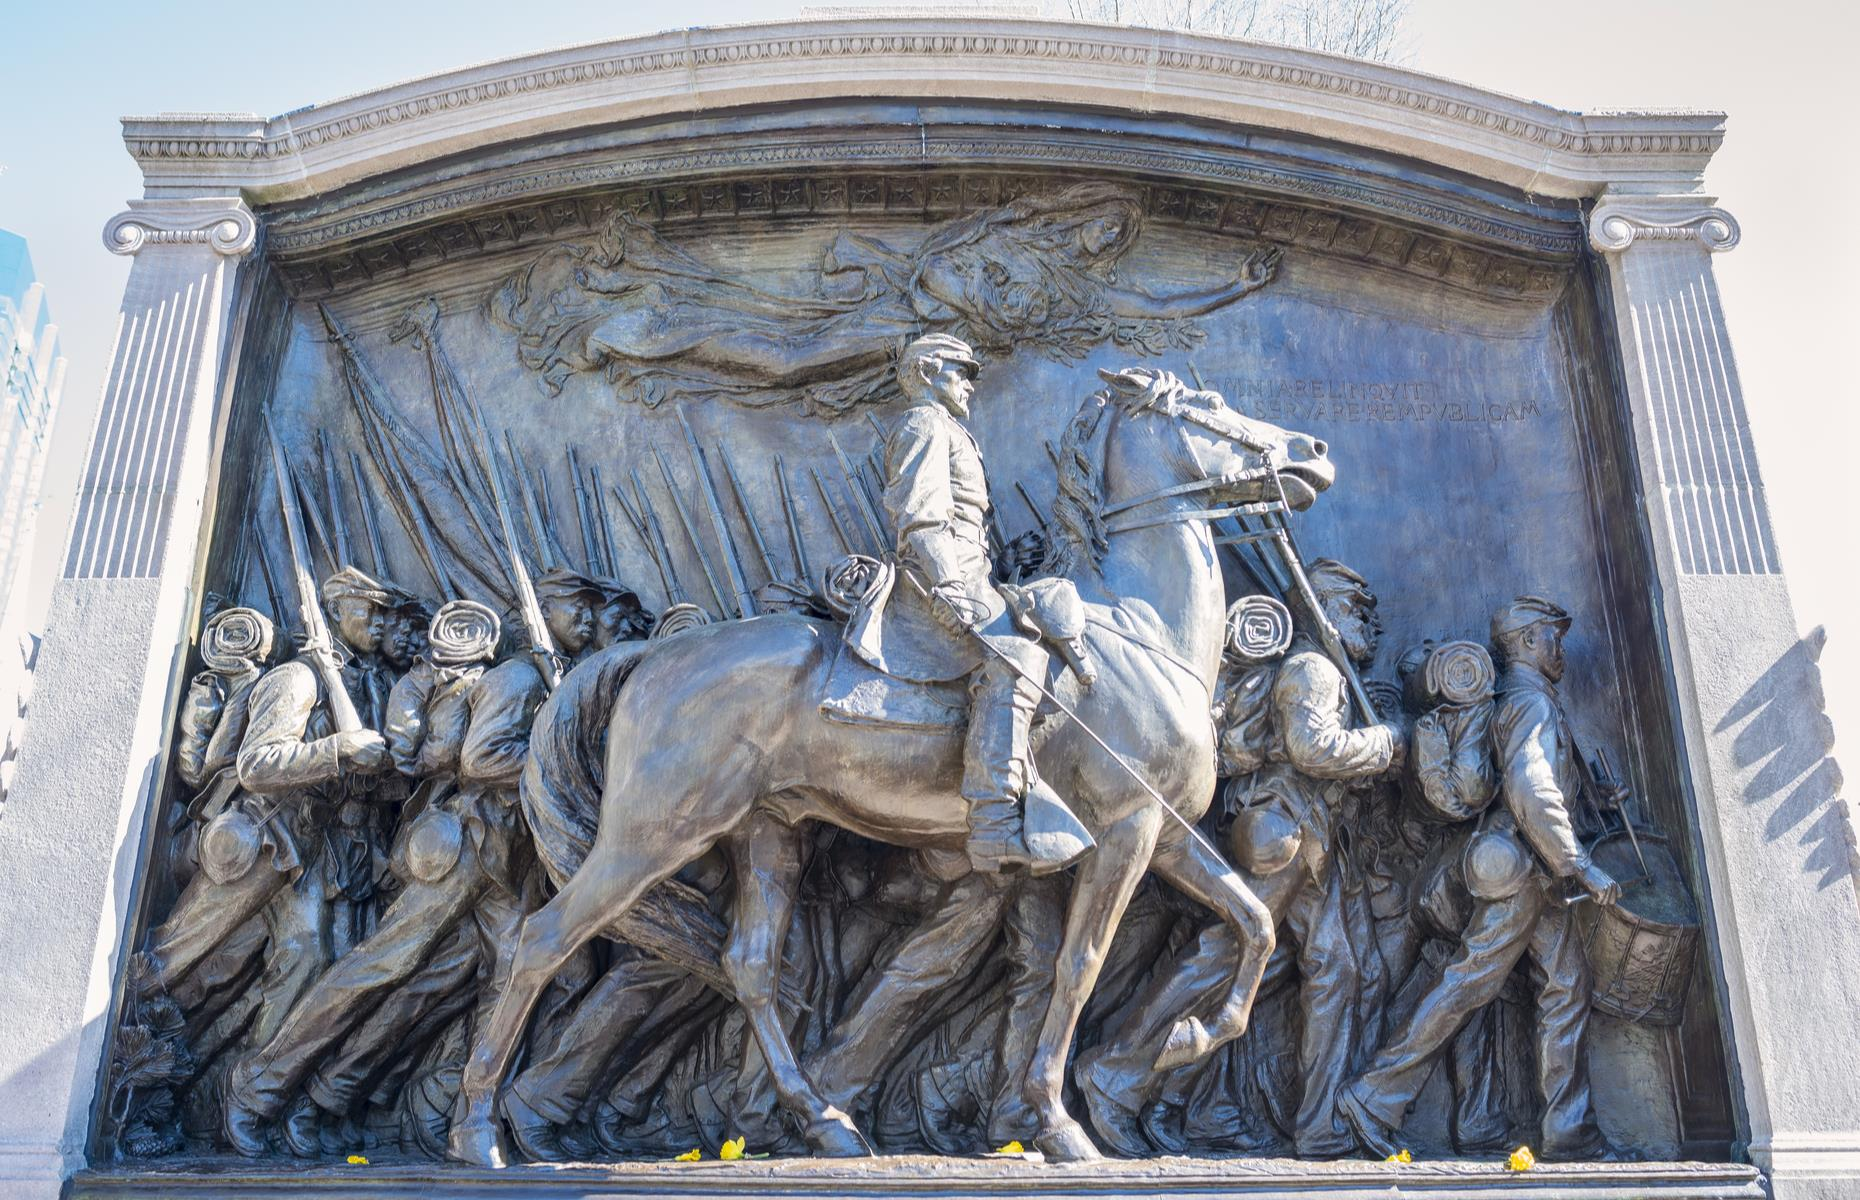 Slide 42 of 51: This national historic site is dedicated to the African American peoples of Boston's Beacon Hill neighborhood, who were leaders in the struggle against slavery in the 19th century. The Black Heritage Trail winds through the area, taking in Robert Gould Shaw and the 54th Regiment Memorial (pictured), a key landmark dedicated to an early all-black regiment that served in the Civil War.